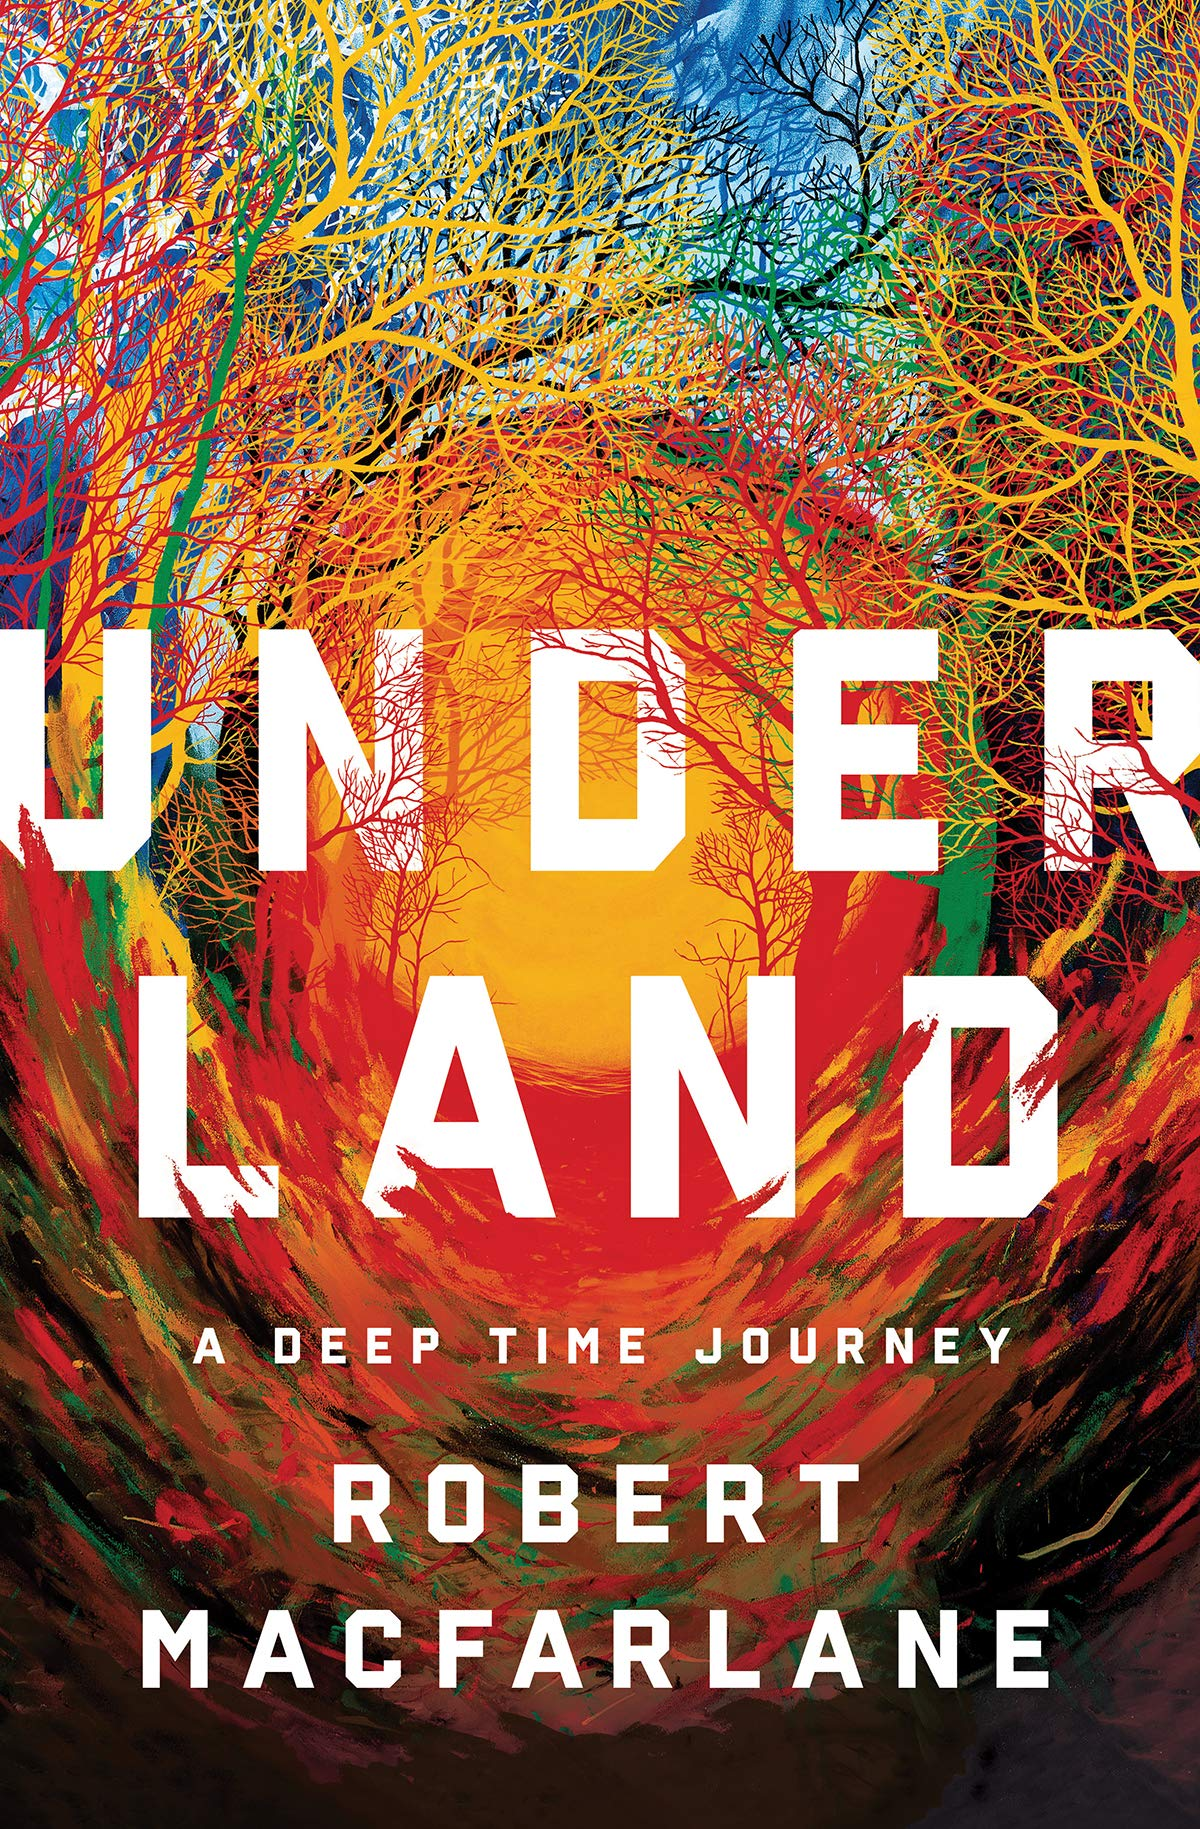 Underland Book Cover Image